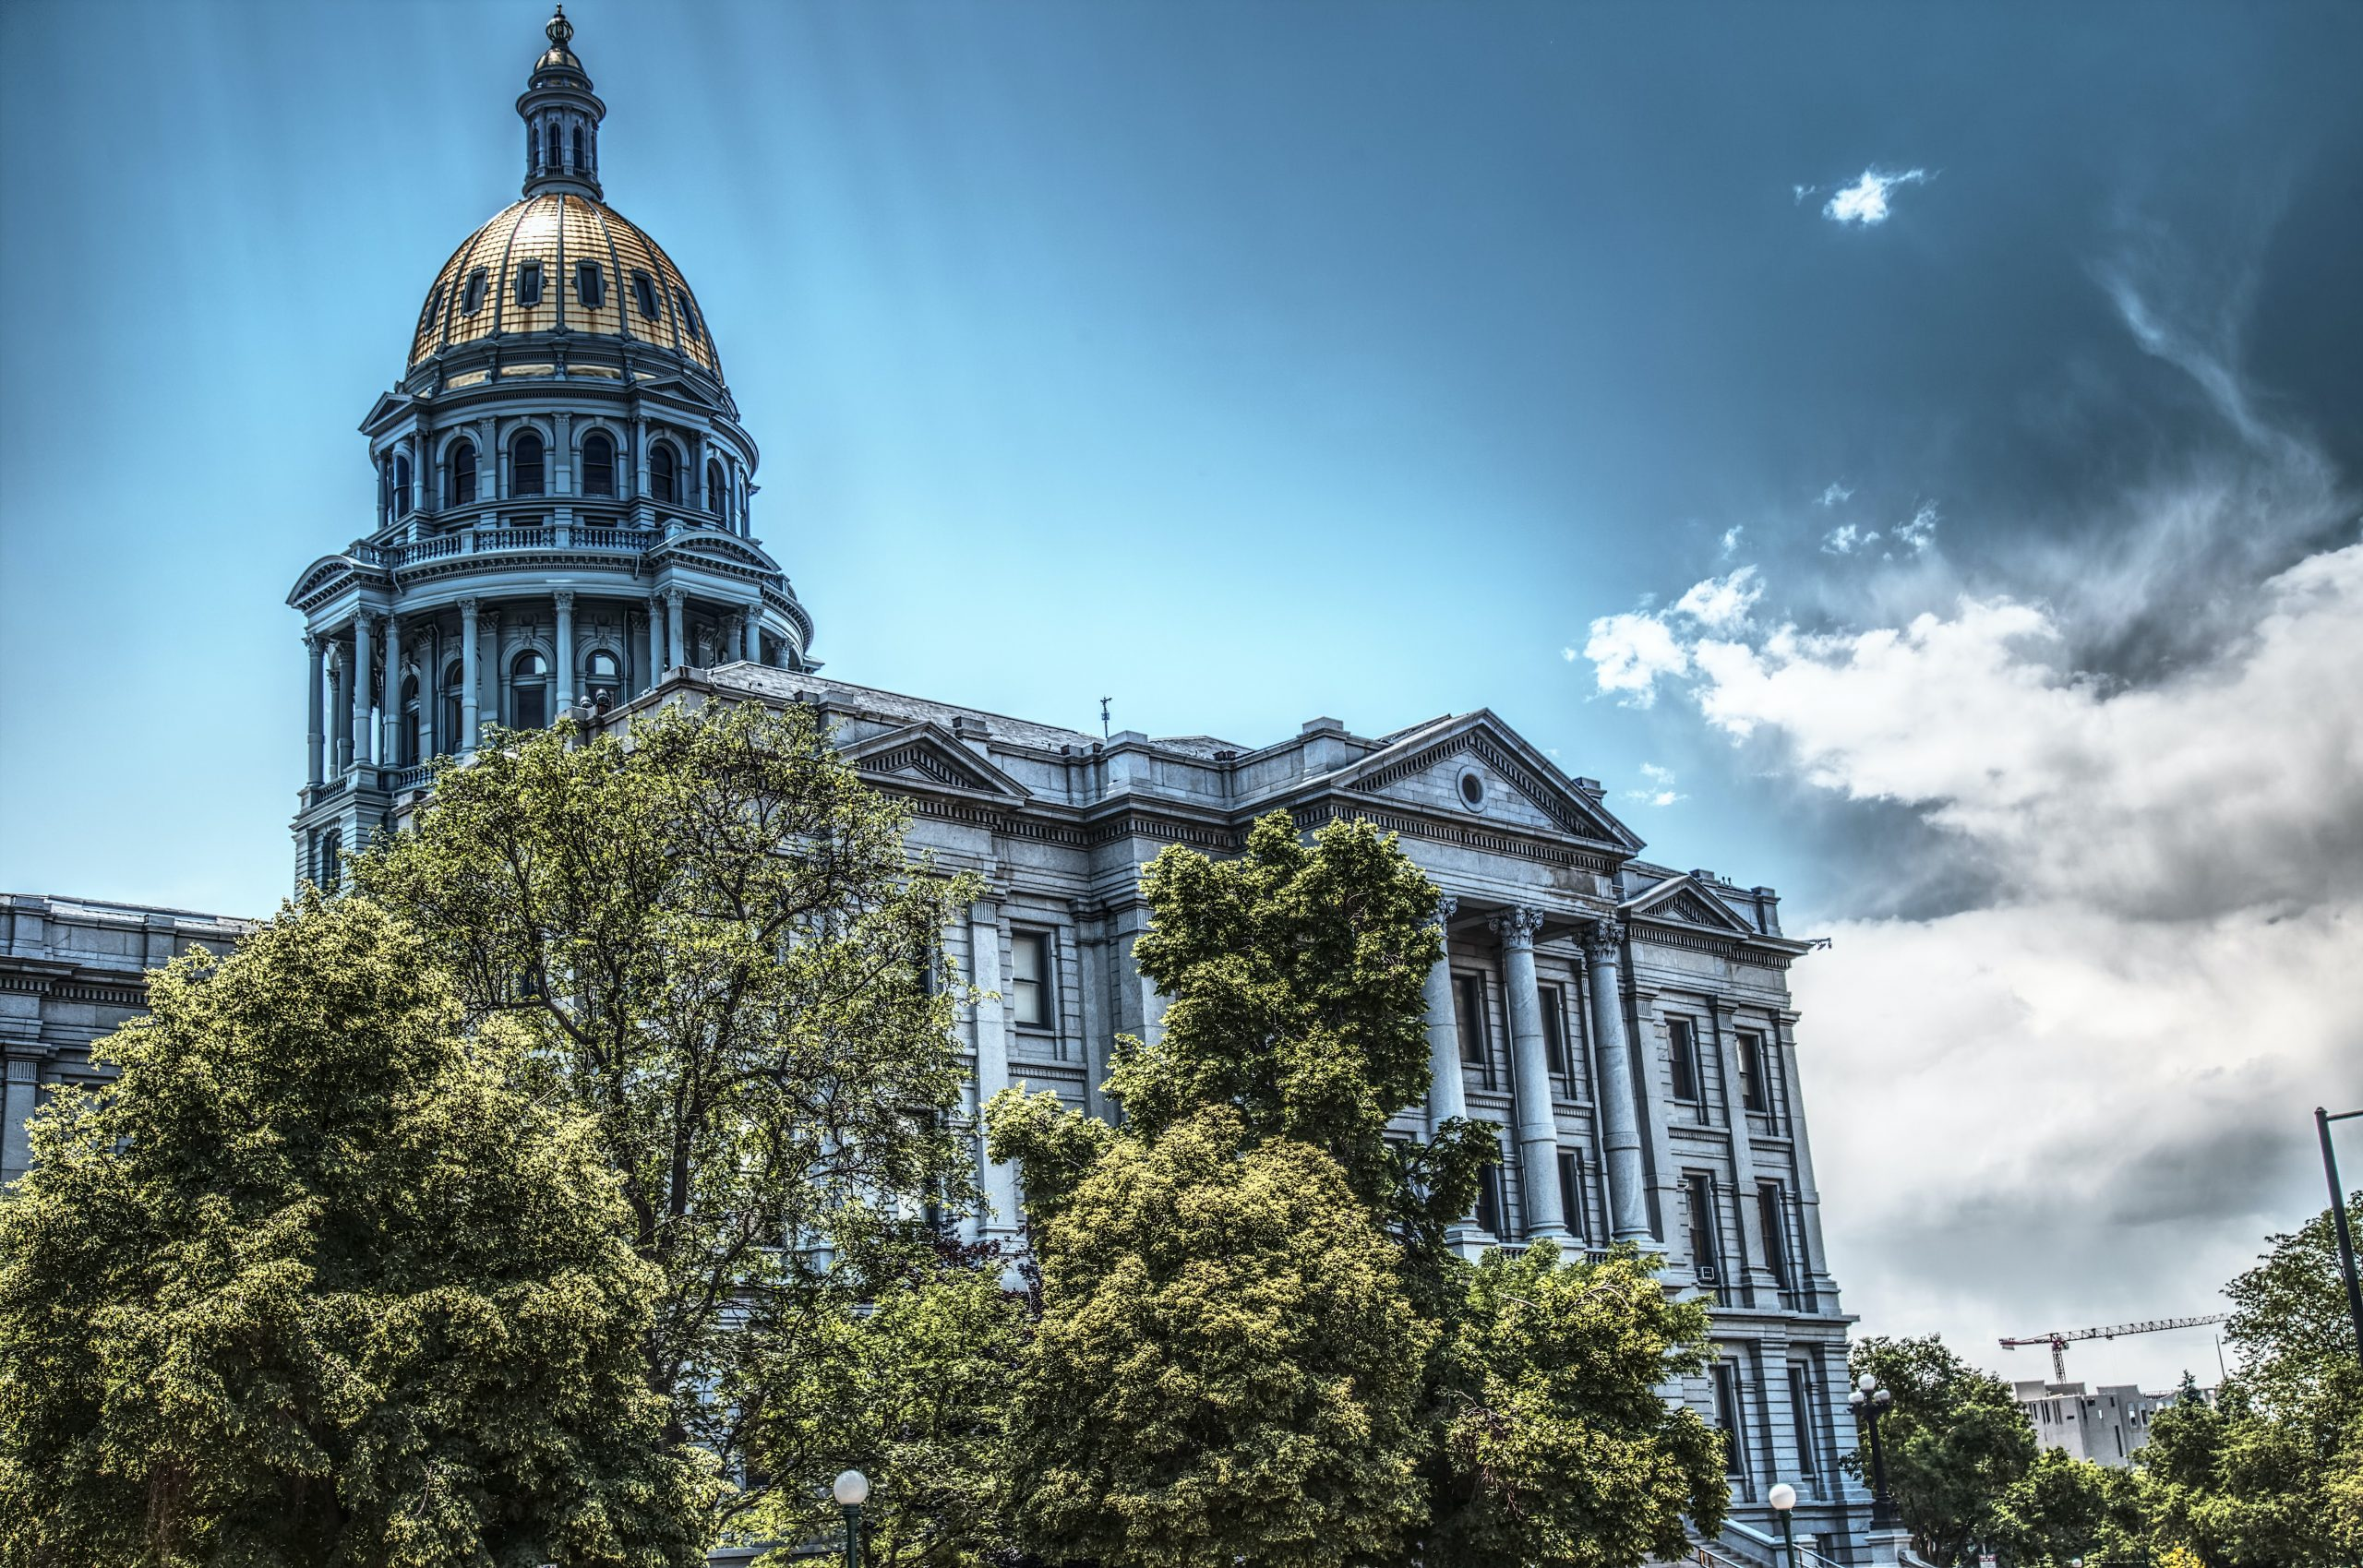 The Denver State Capitol Building